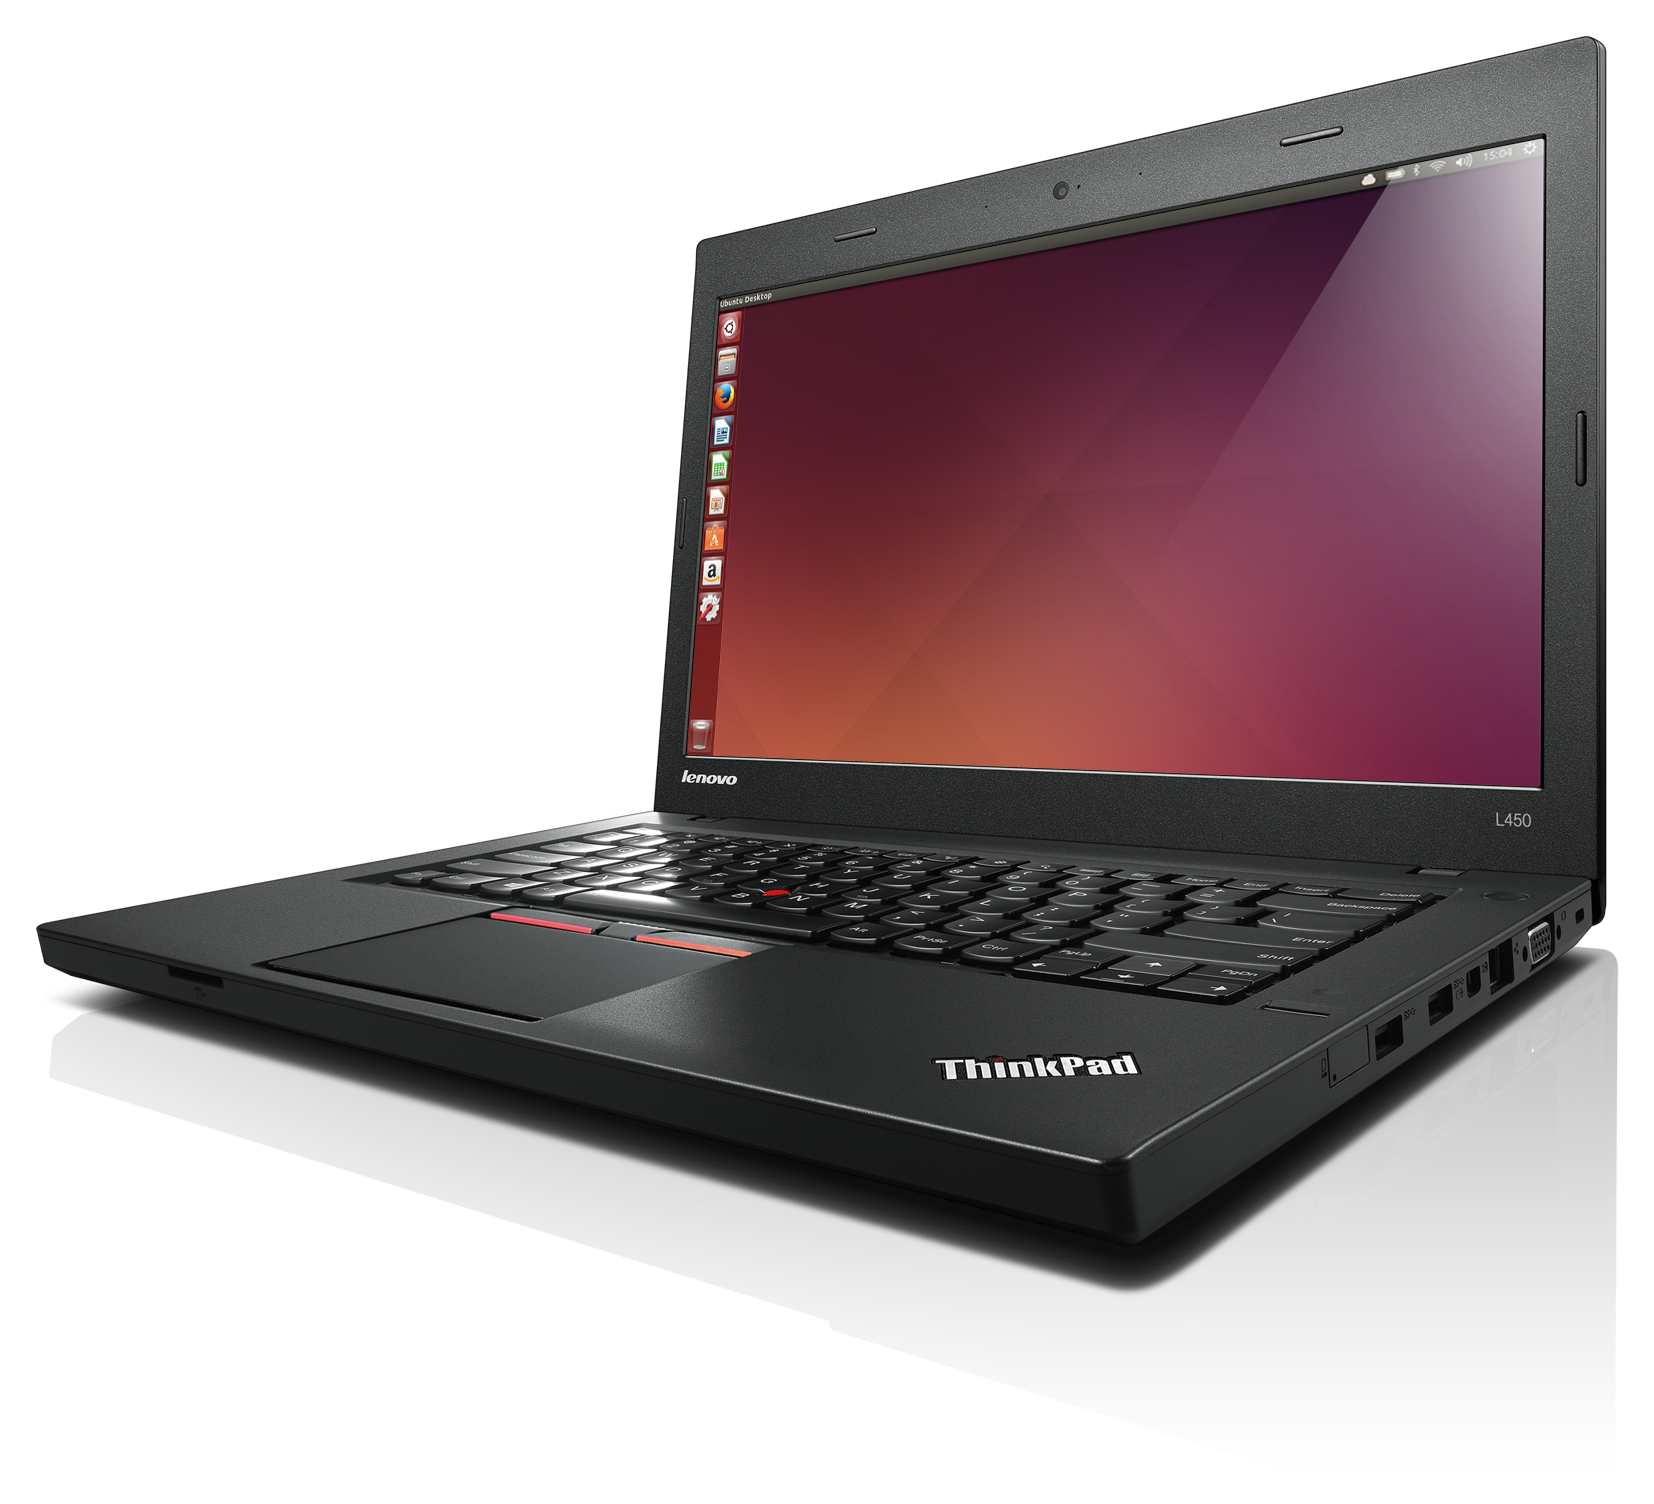 Lenovo Thinkpad L450 Final